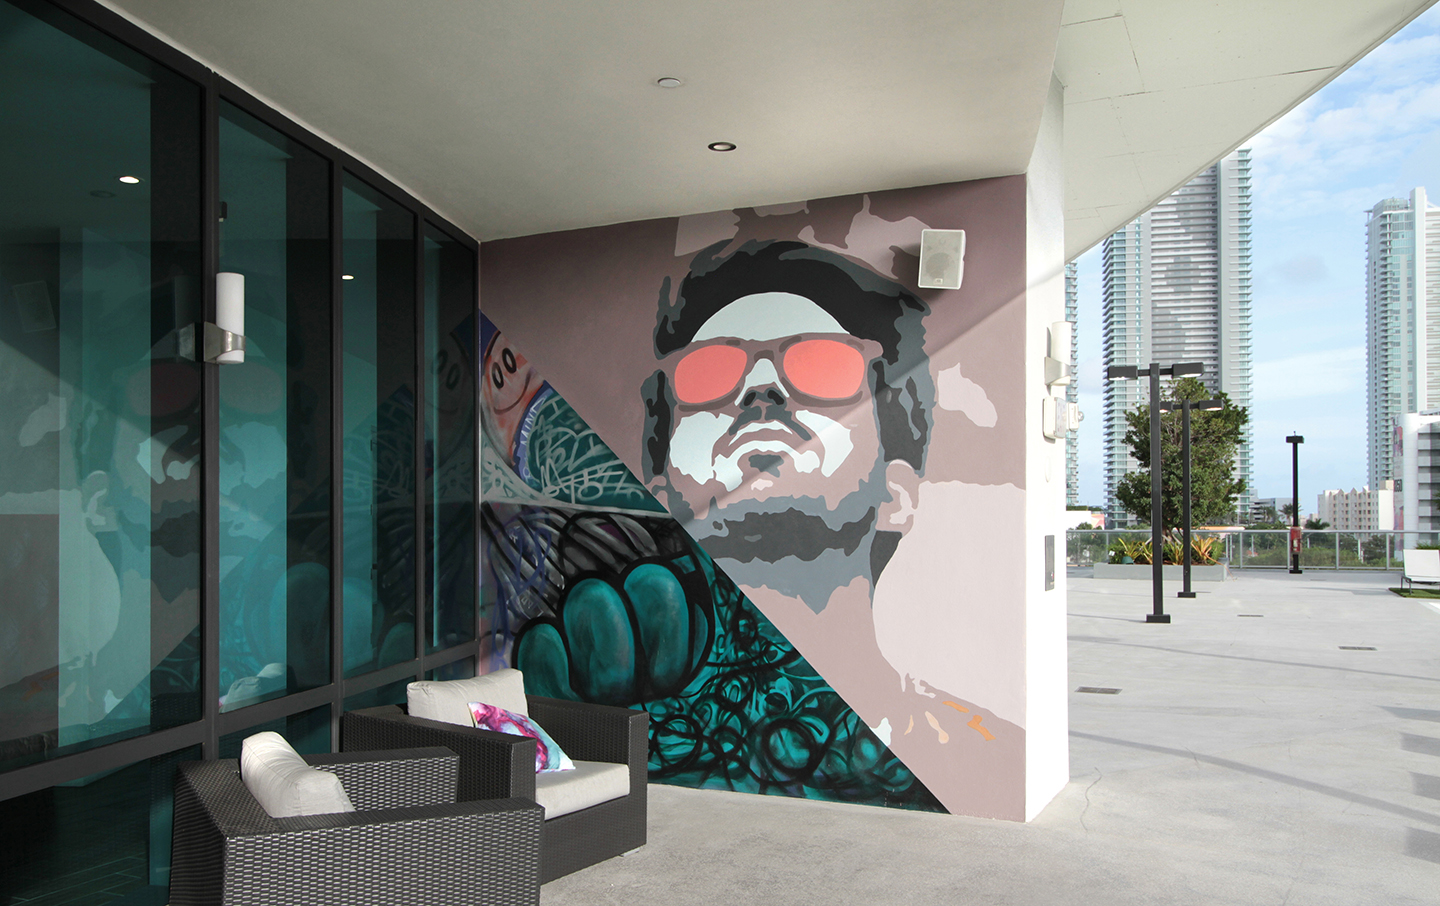 Pool Deck graffiti mural.jpg